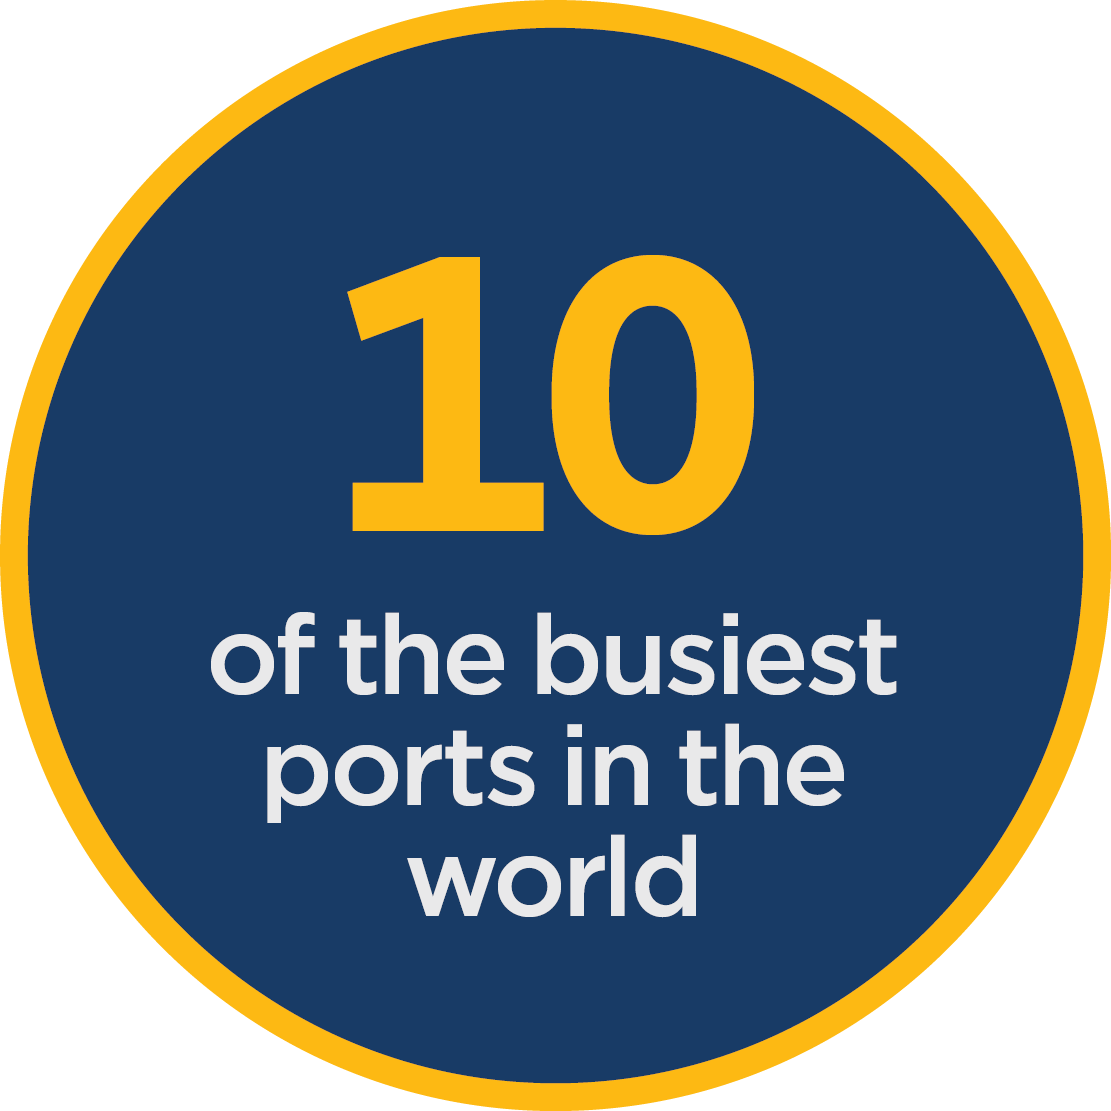 10 of the busiest ports in the world